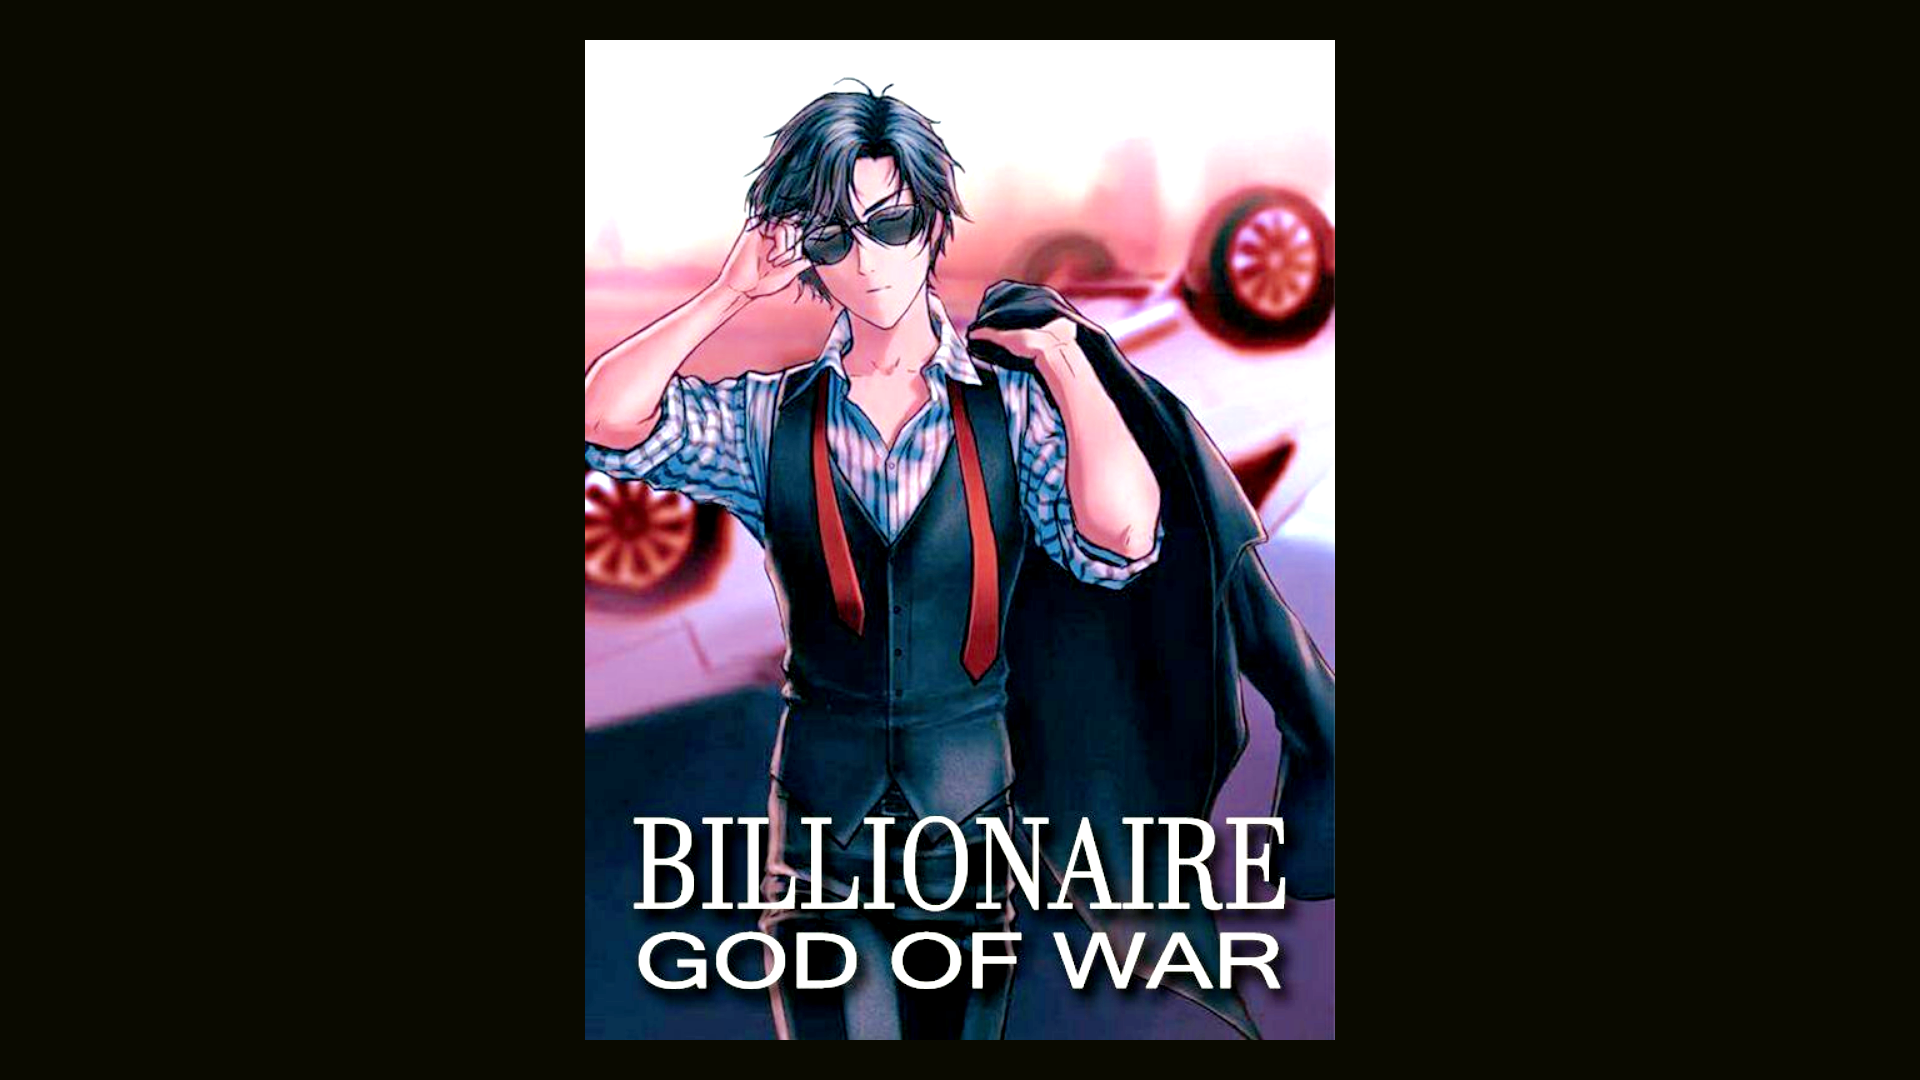 Billionaire God of War Novel